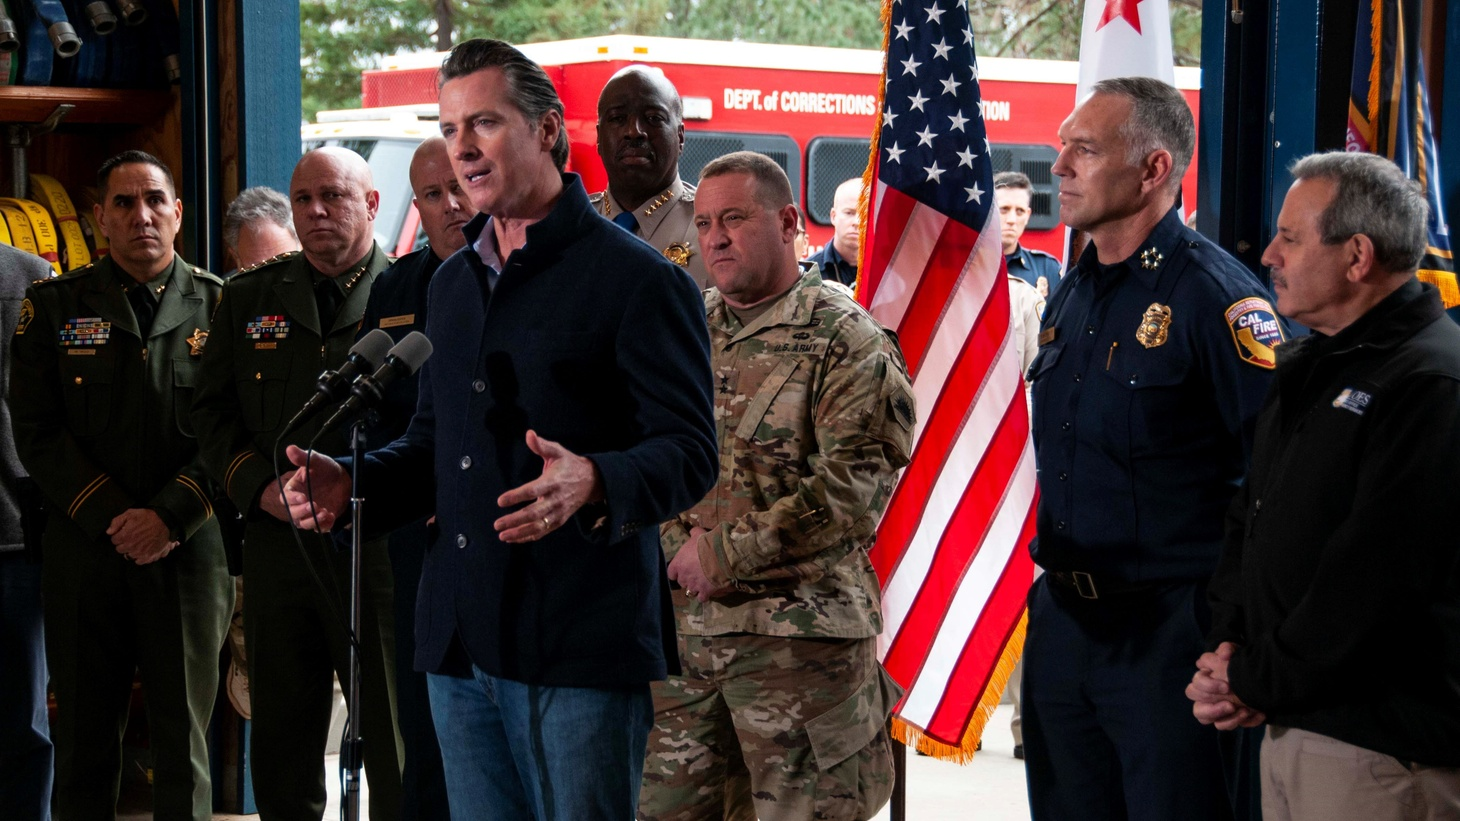 Gov. Gavin Newsom holds a press conference on wildfires on his first full day in office, January 8, 2019, flanked by emergency responders and local officials.